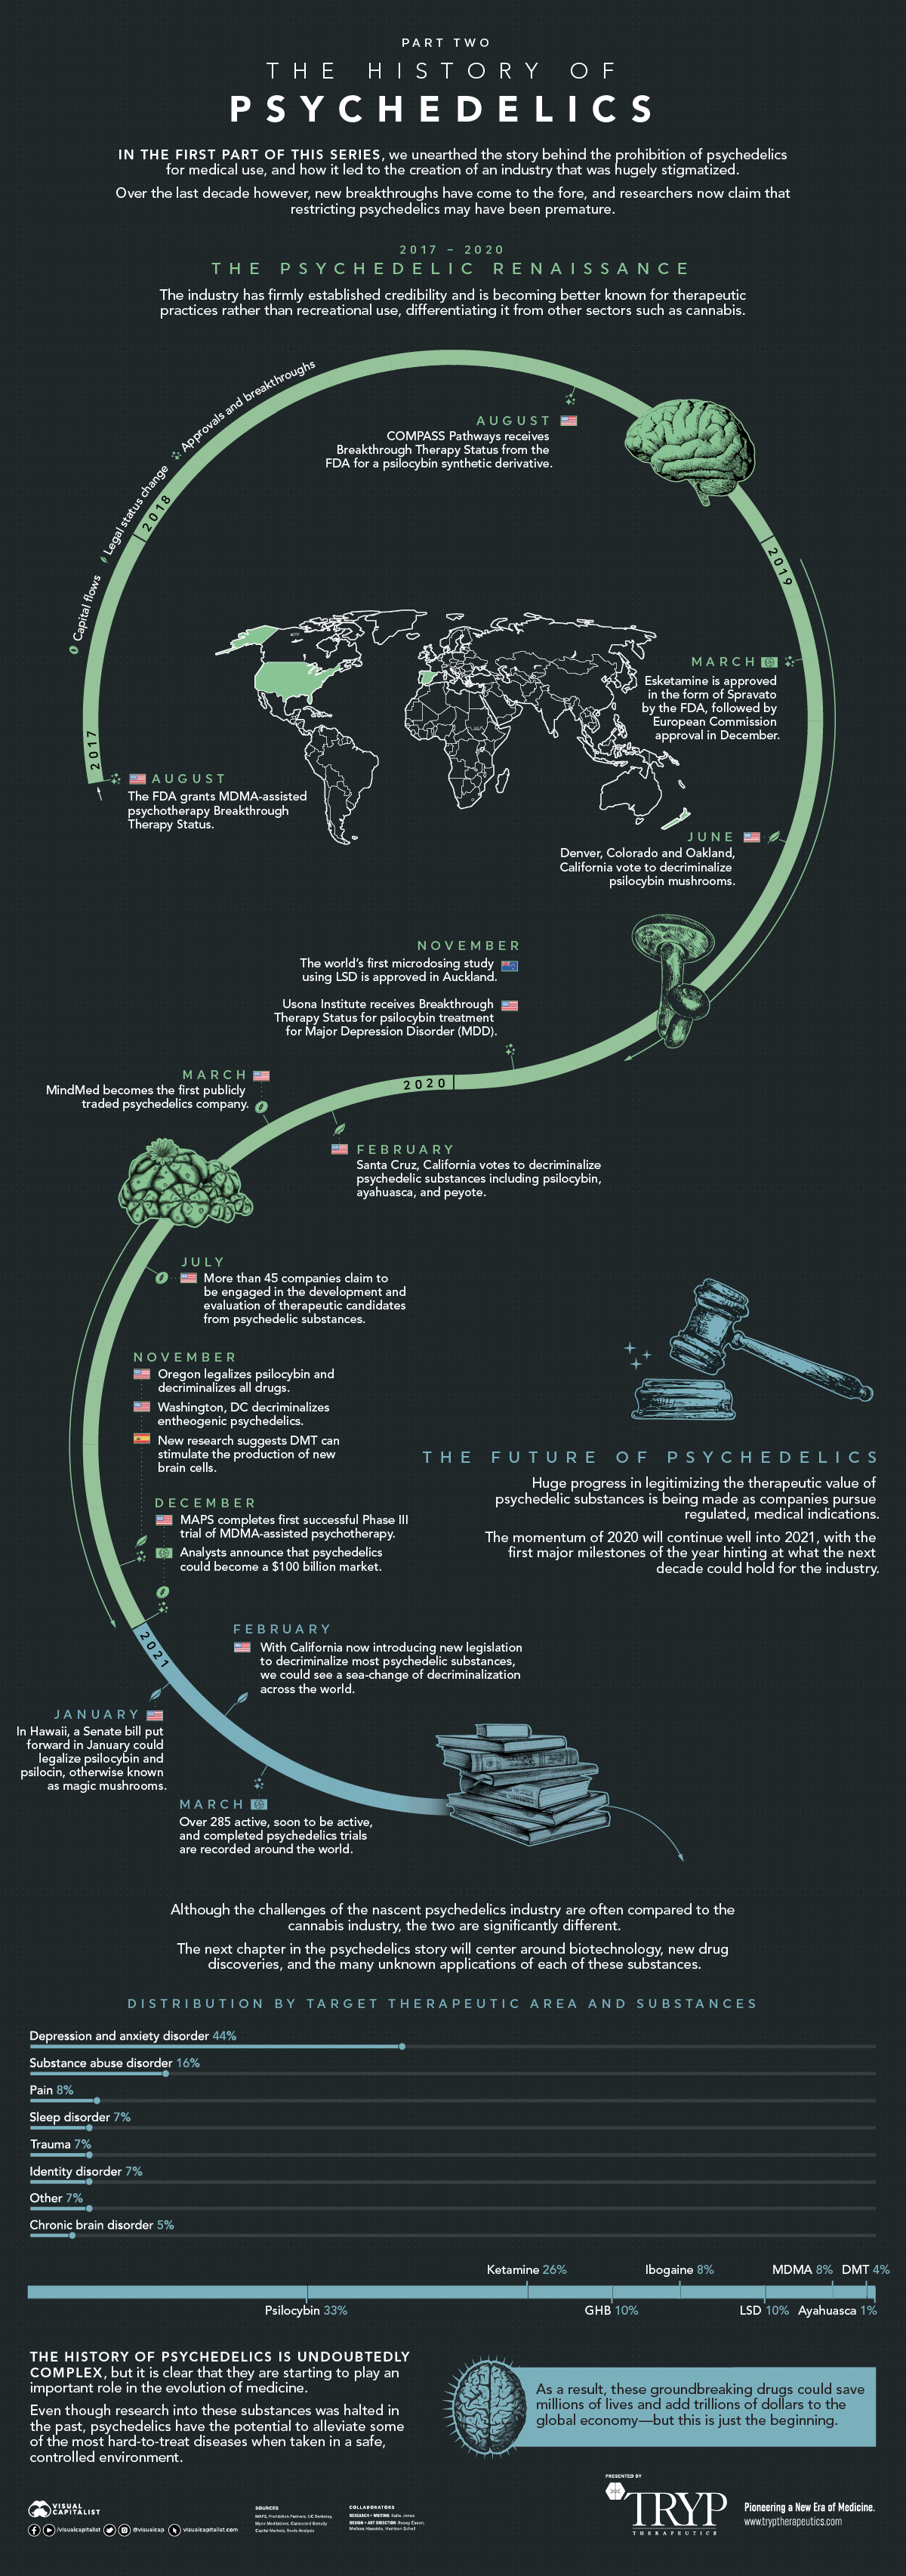 history of psychedelics part 2 infographic